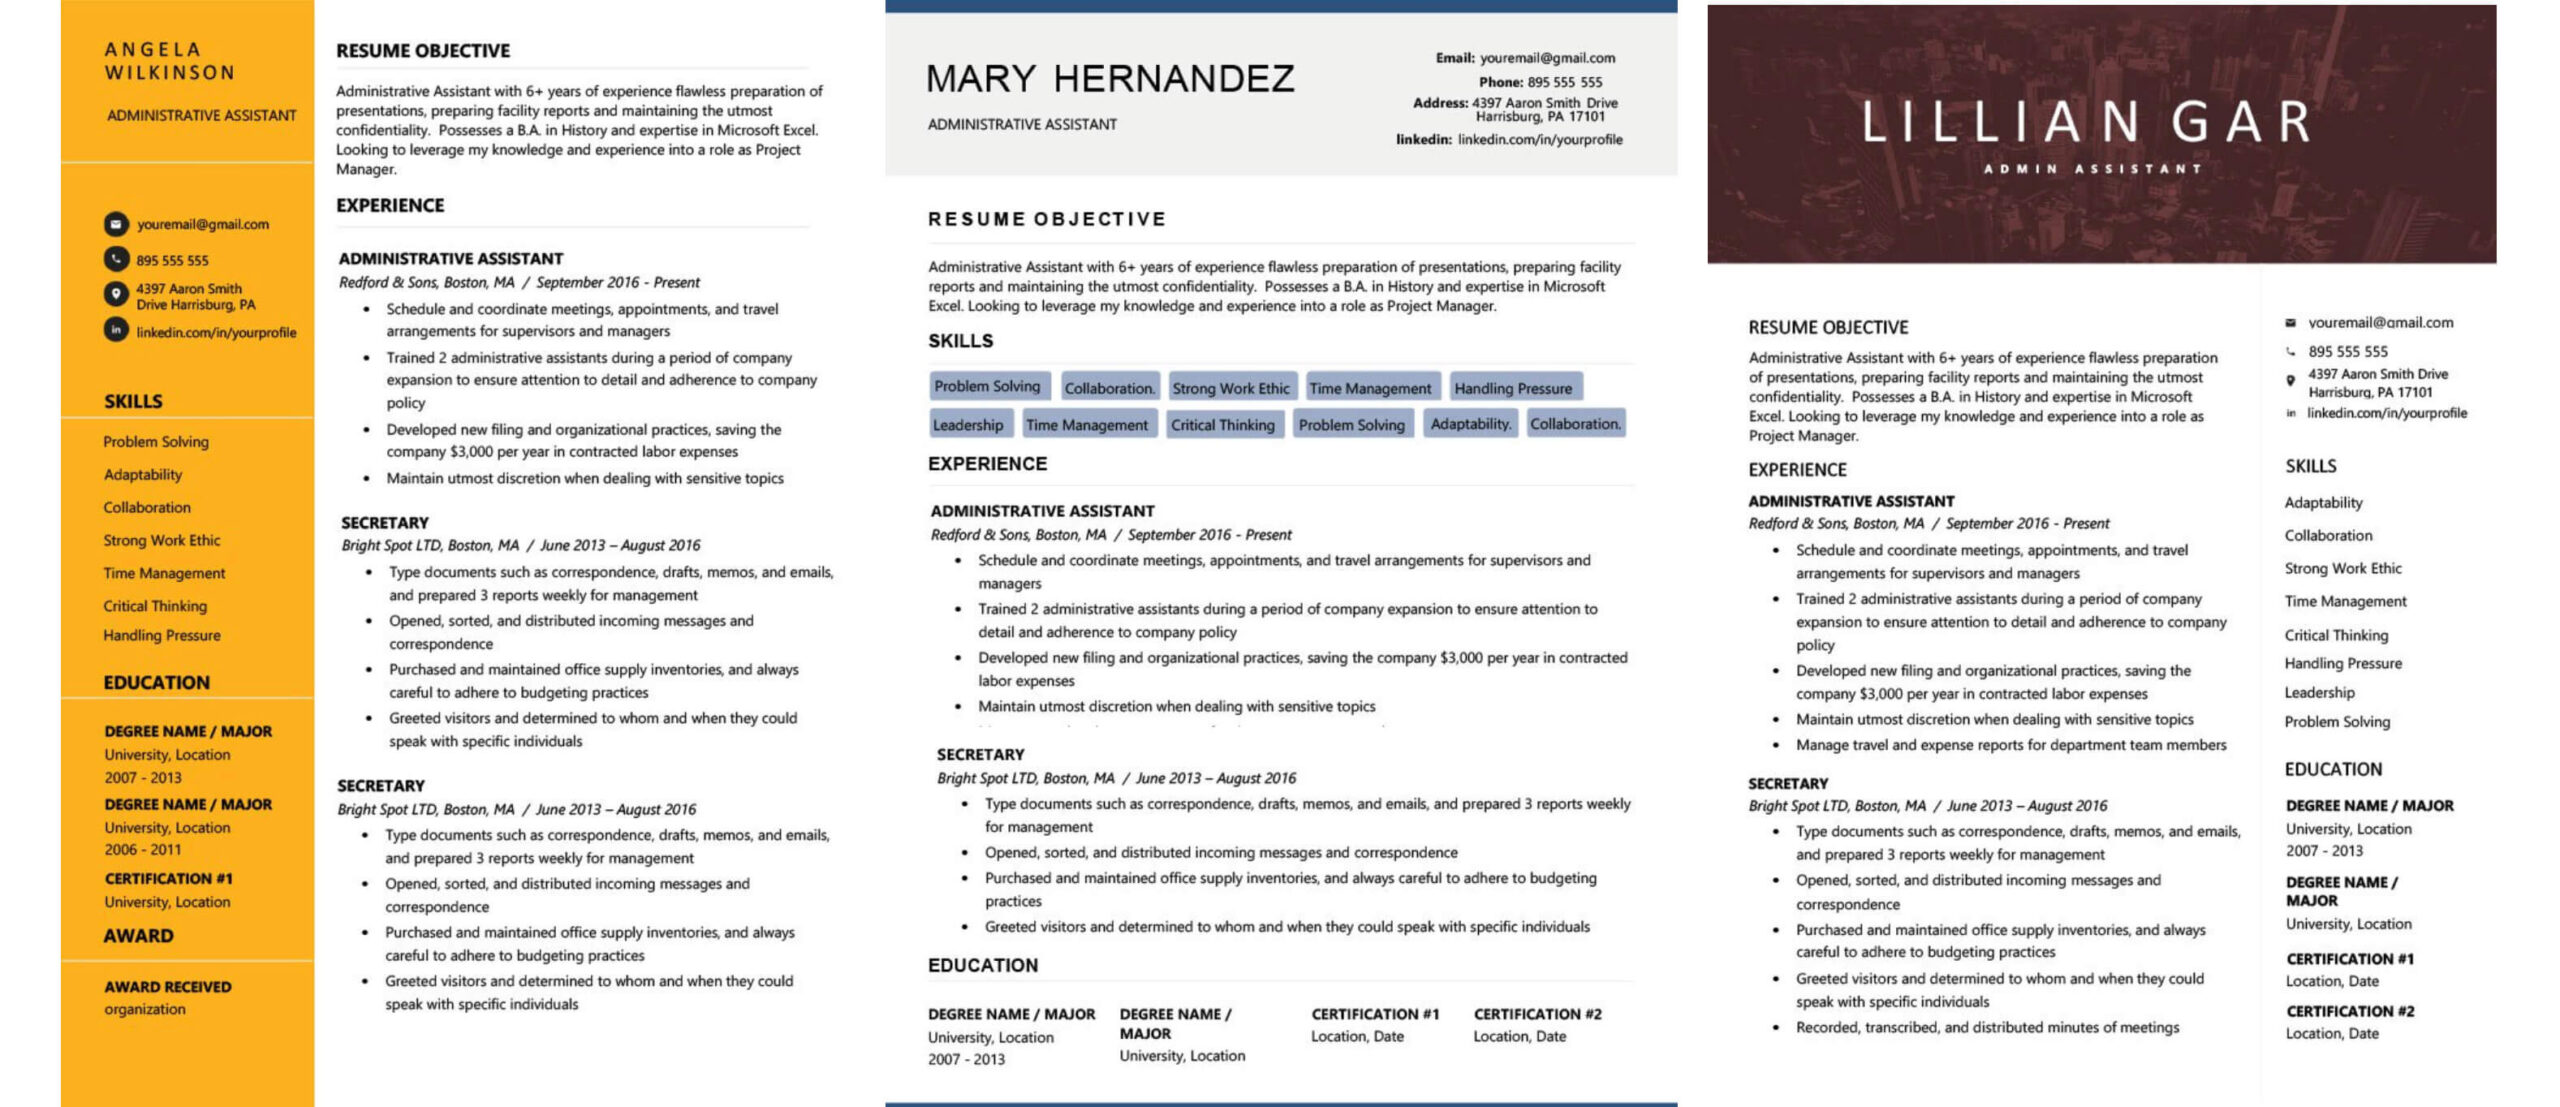 to write great data science resume dataquest review creative templates med school math Resume Data Science Resume Review